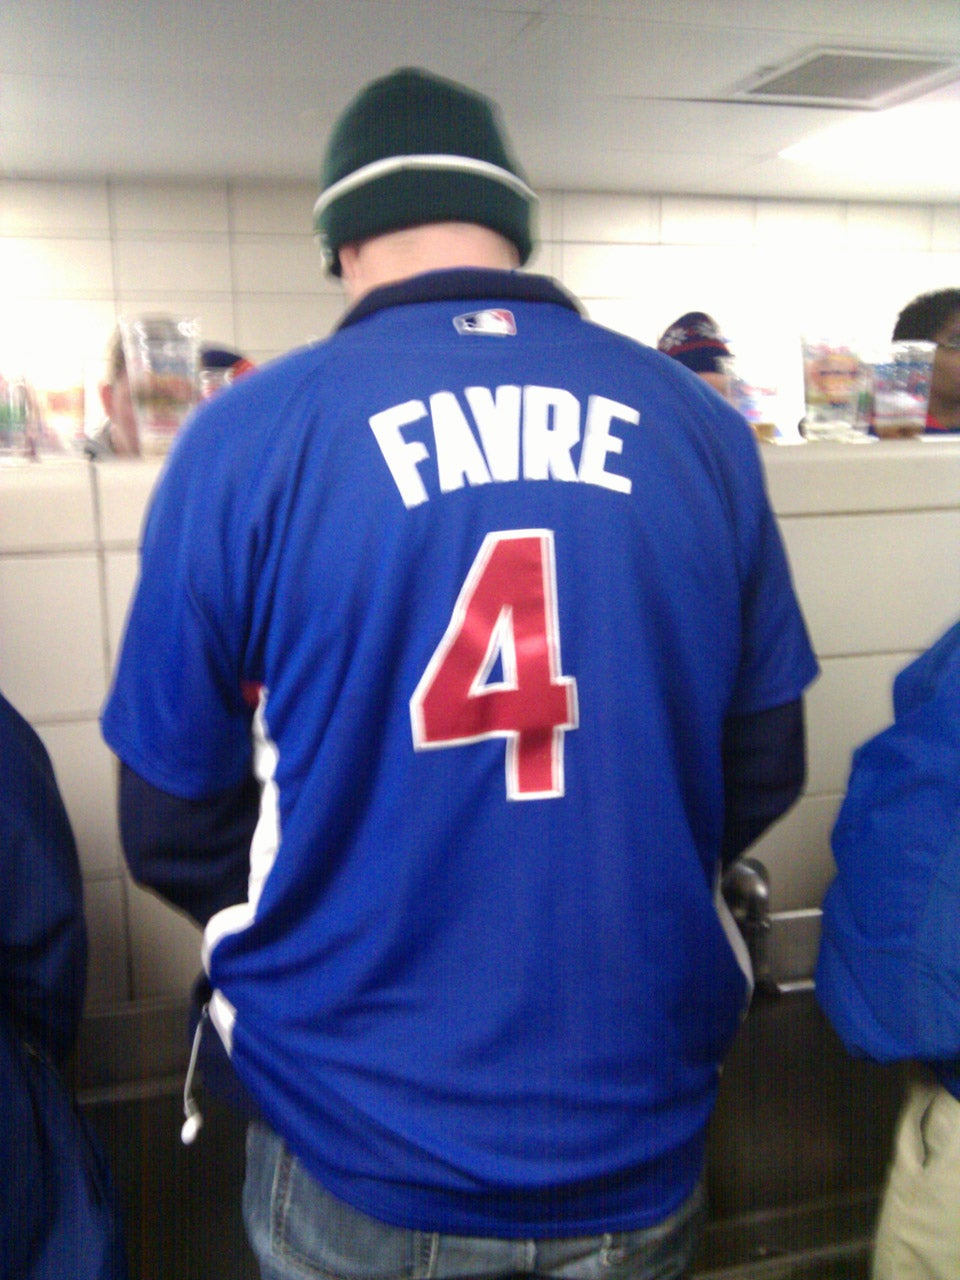 Yet Another Reason To Hate The Midwest: This Guy's Cubs Favre Jersey